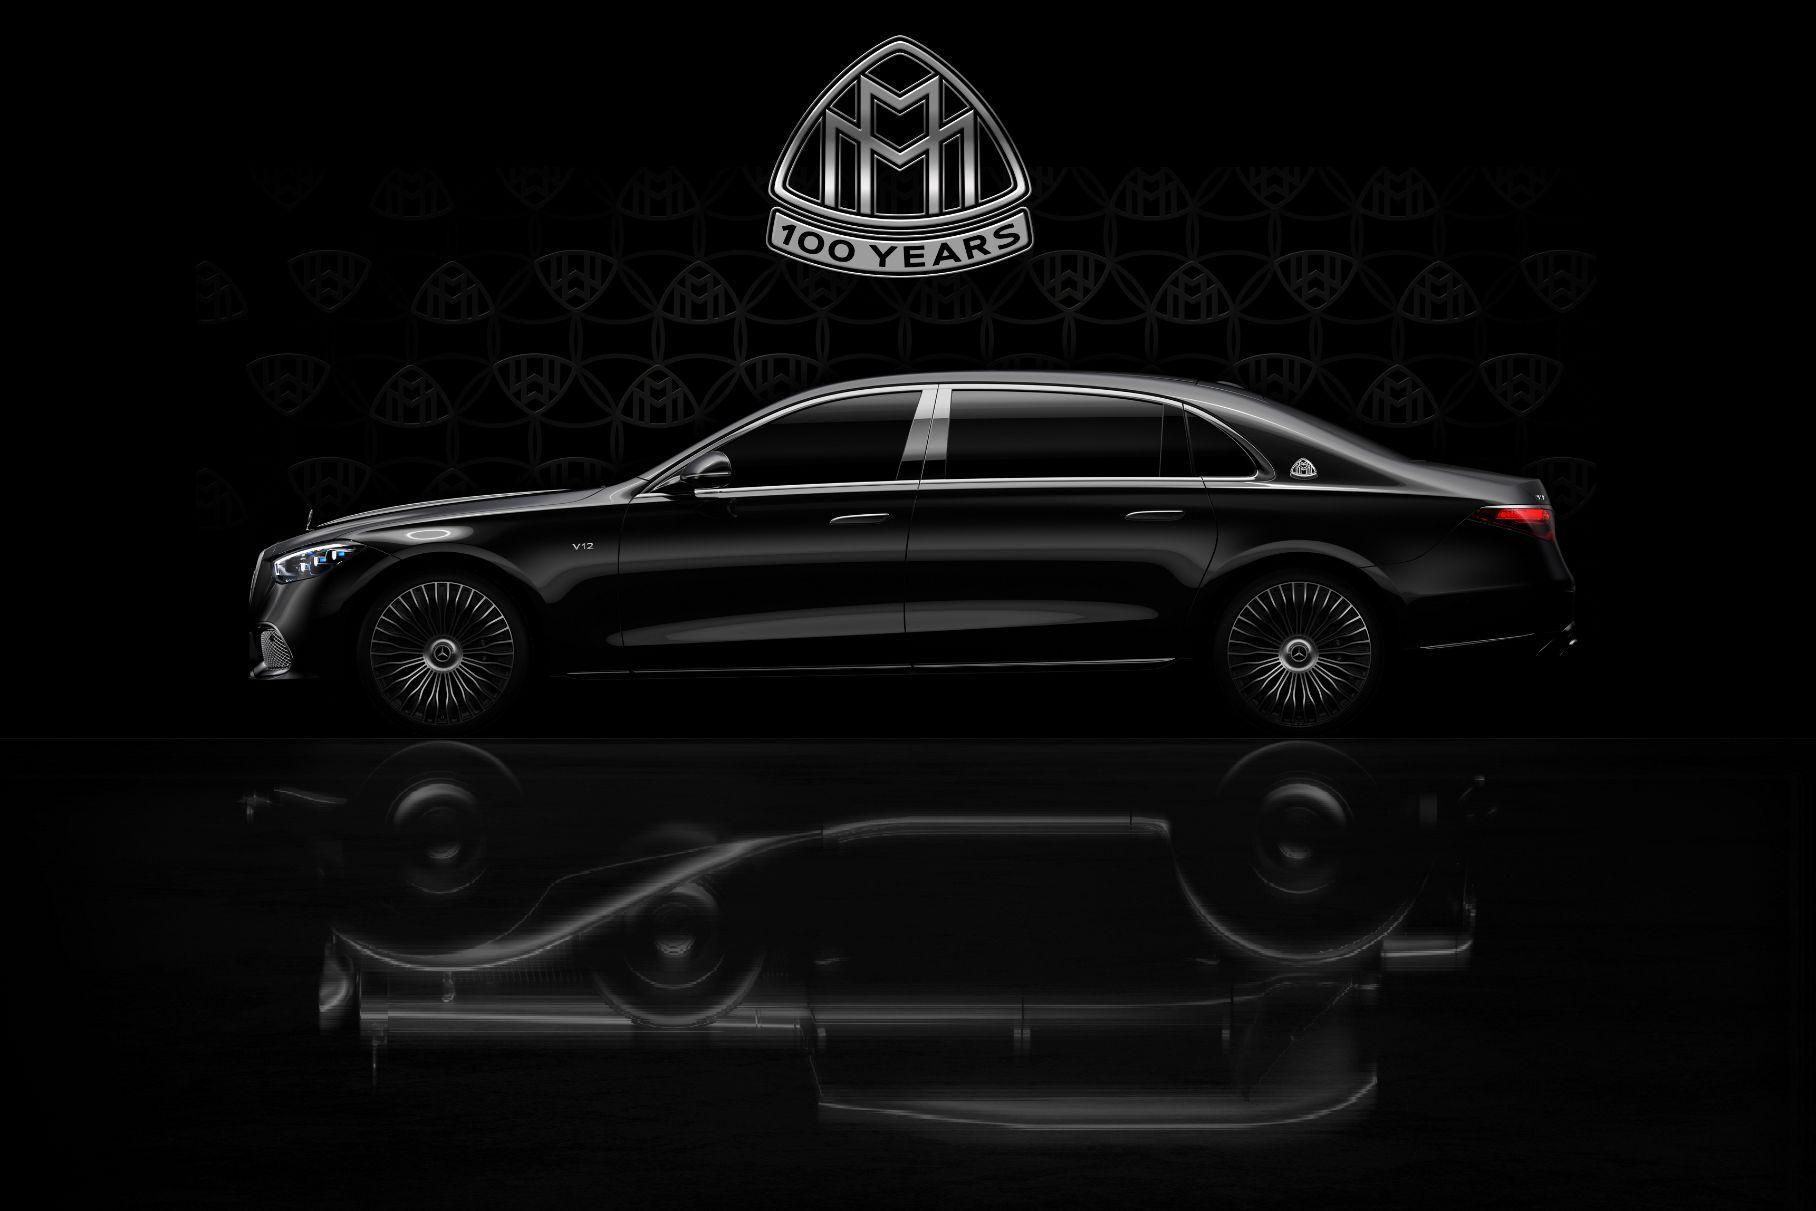 Mercedes will soon begin celebrating one hundred years since the establishment of its luxury sub-brand, Maybach. A teaser image previews a special V12 S-Class coming to the party this year.